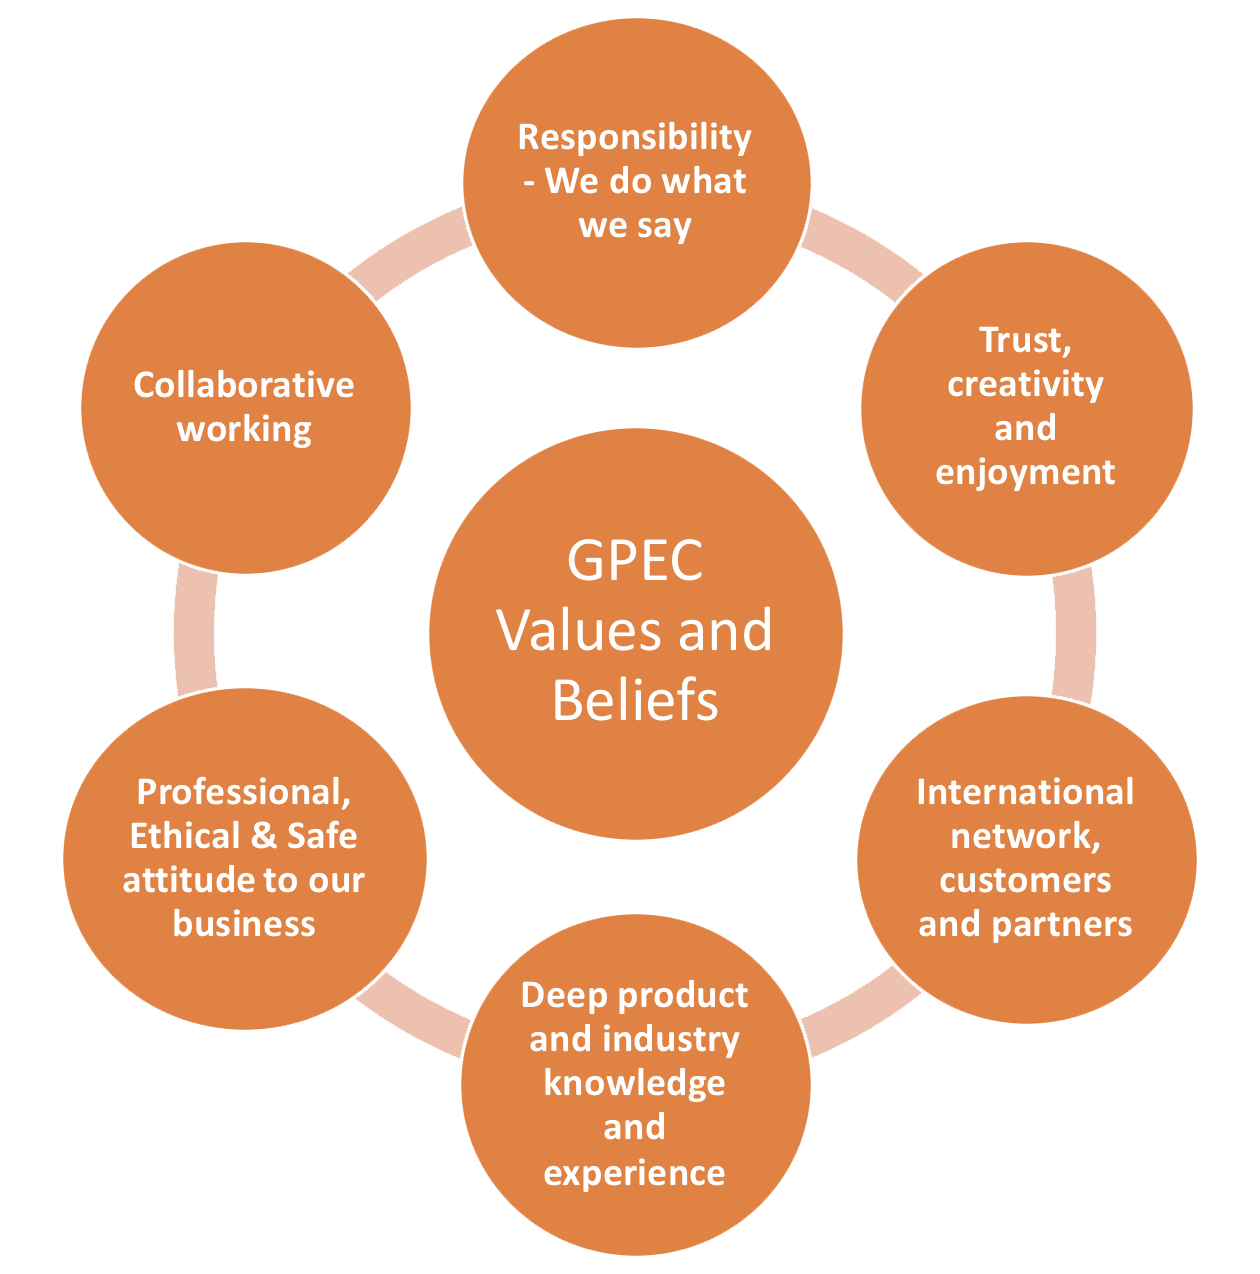 GPEC Values & Beliefs